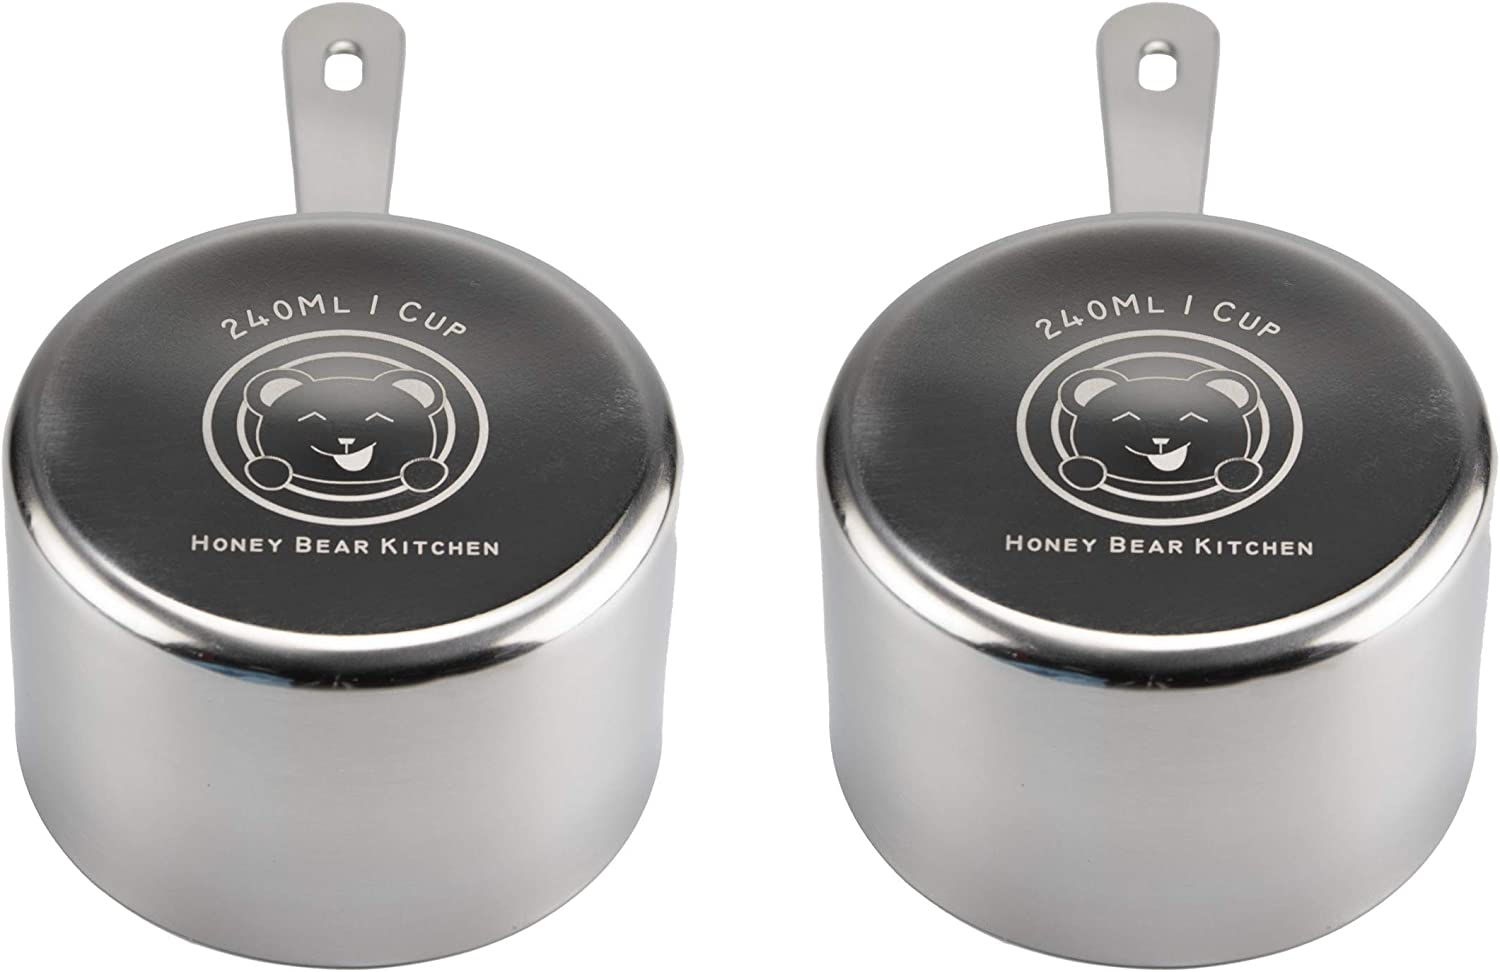 Honey Bear Kitchen 1 Cup 240 ml Measuring Scoop Cups, Polished Stainless Steel (Set of 2)